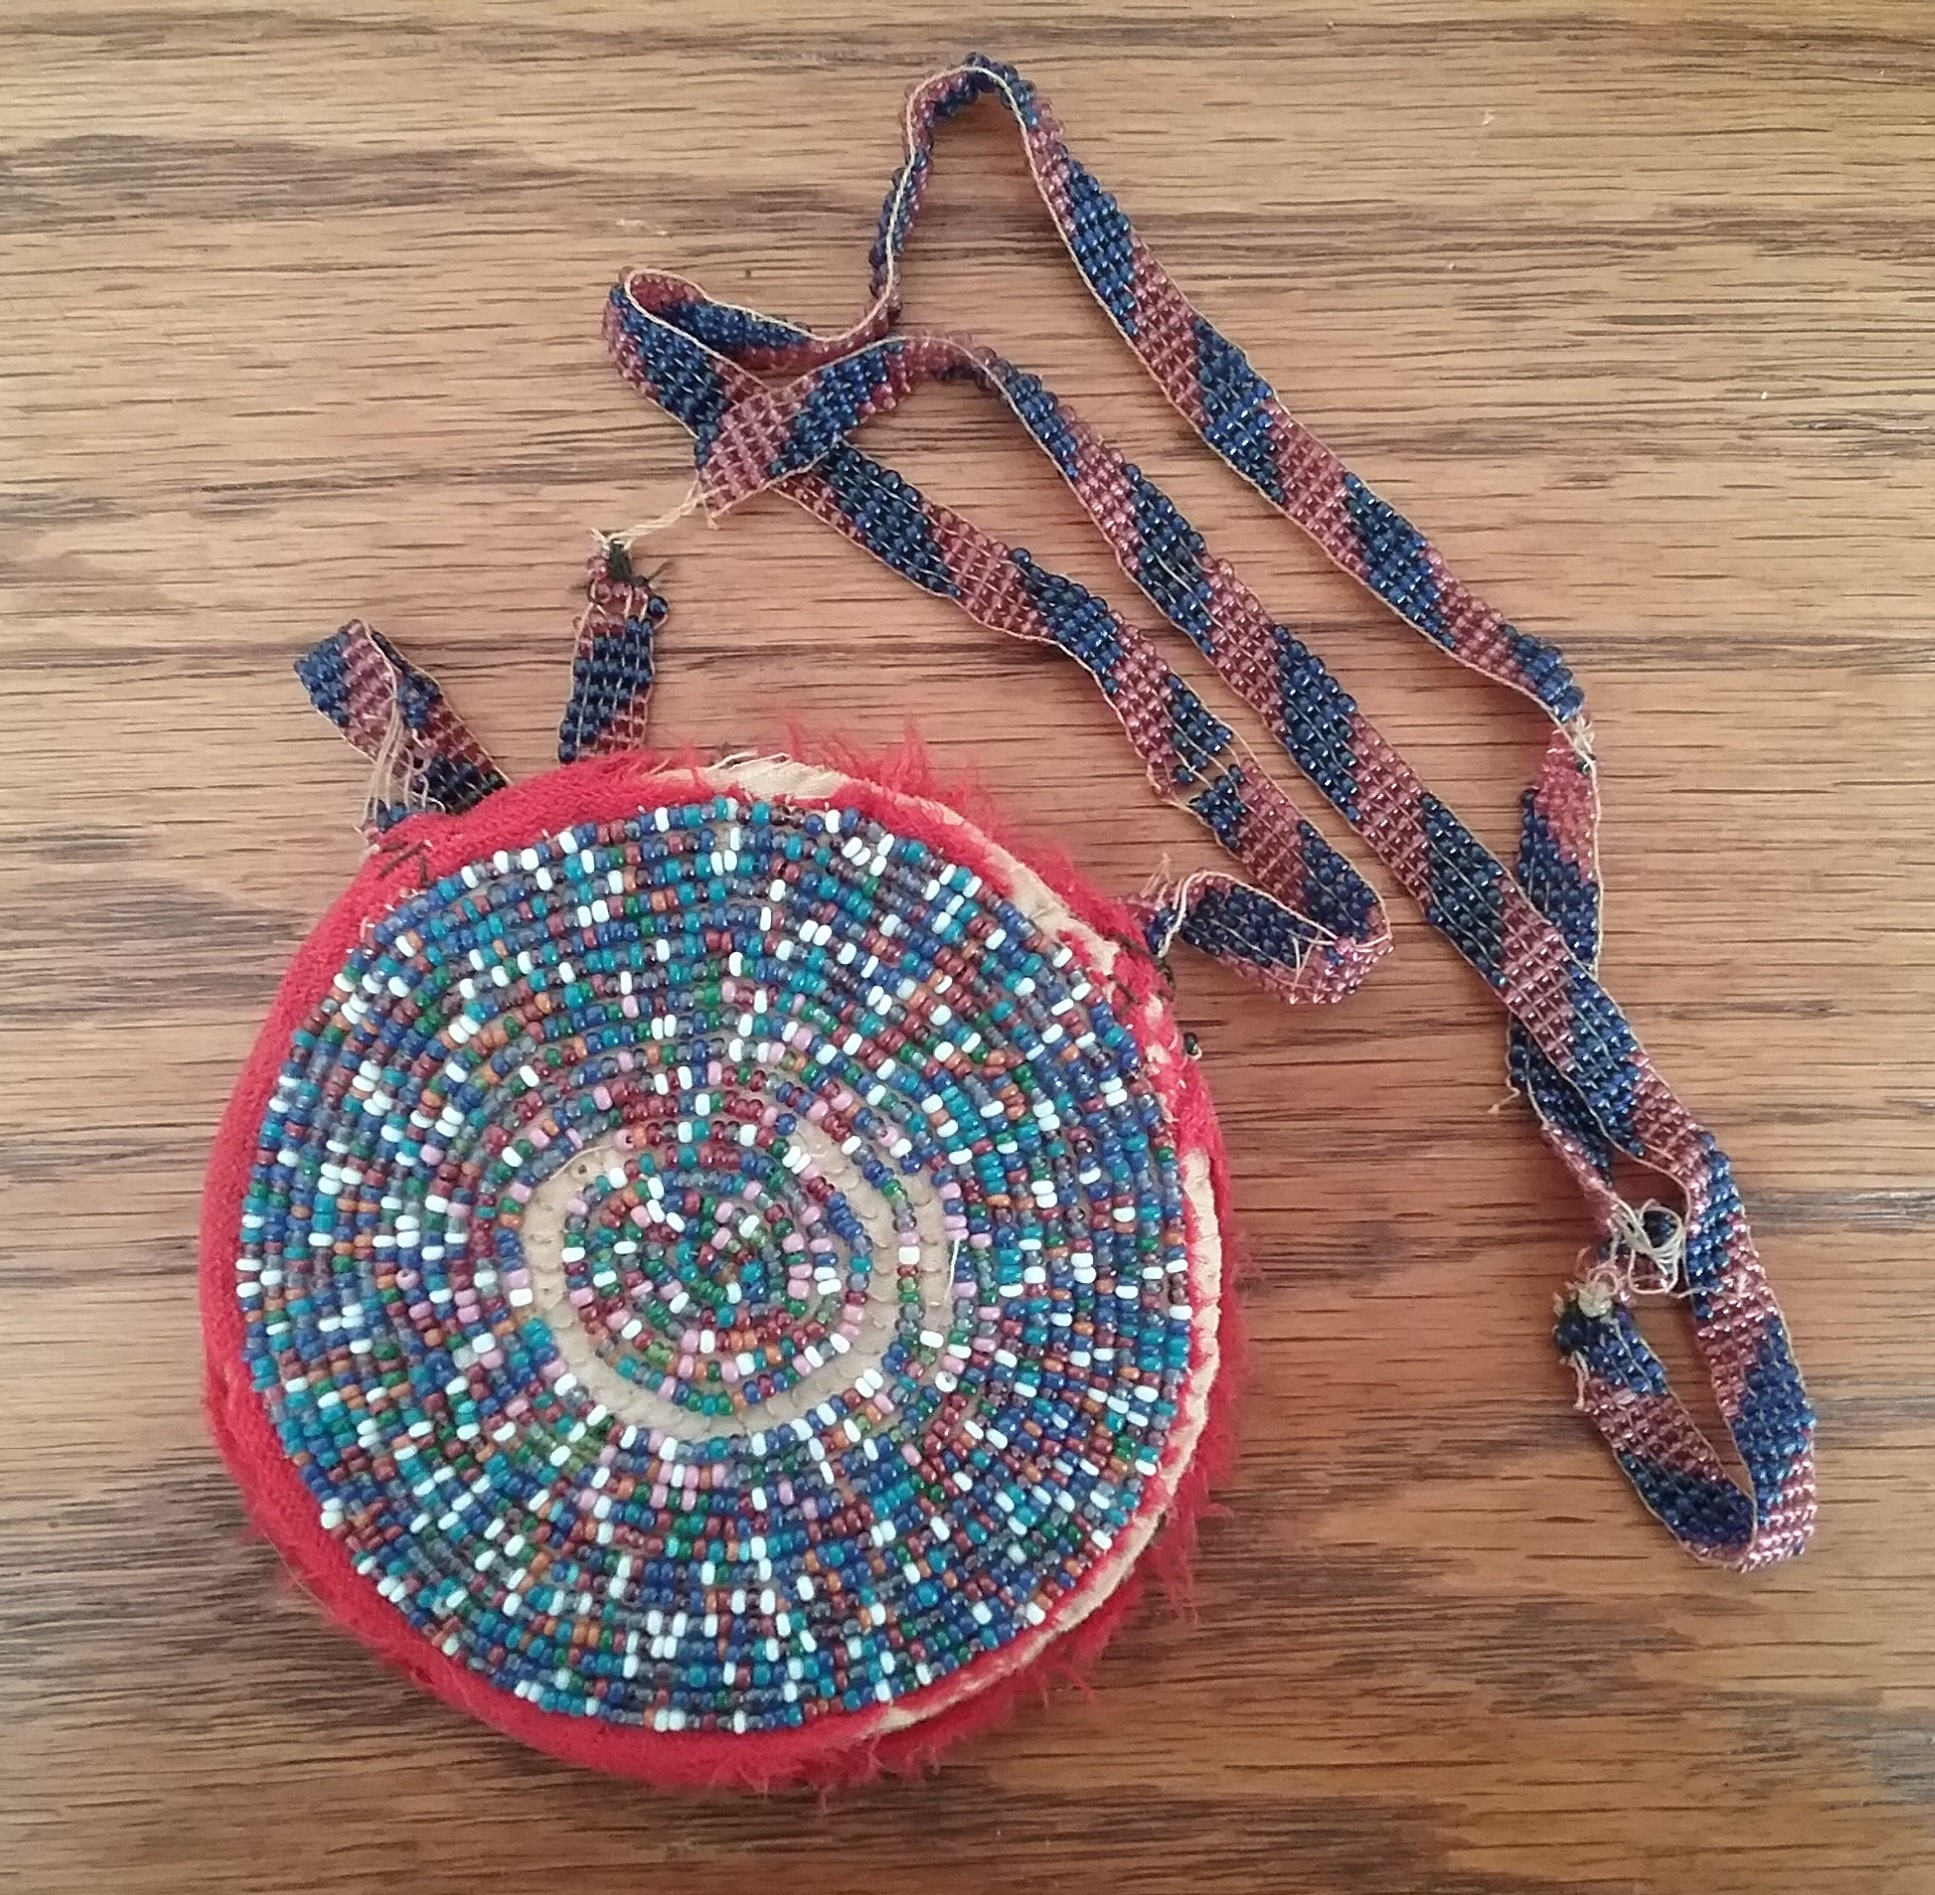 Coin Purse: Round beaded coin purse with beaded strap (second side featuring multi-colored seed beads in random pattern), donated by Viola & Frances Landmeier in 1970. MCHS collections, #1970.22.14.